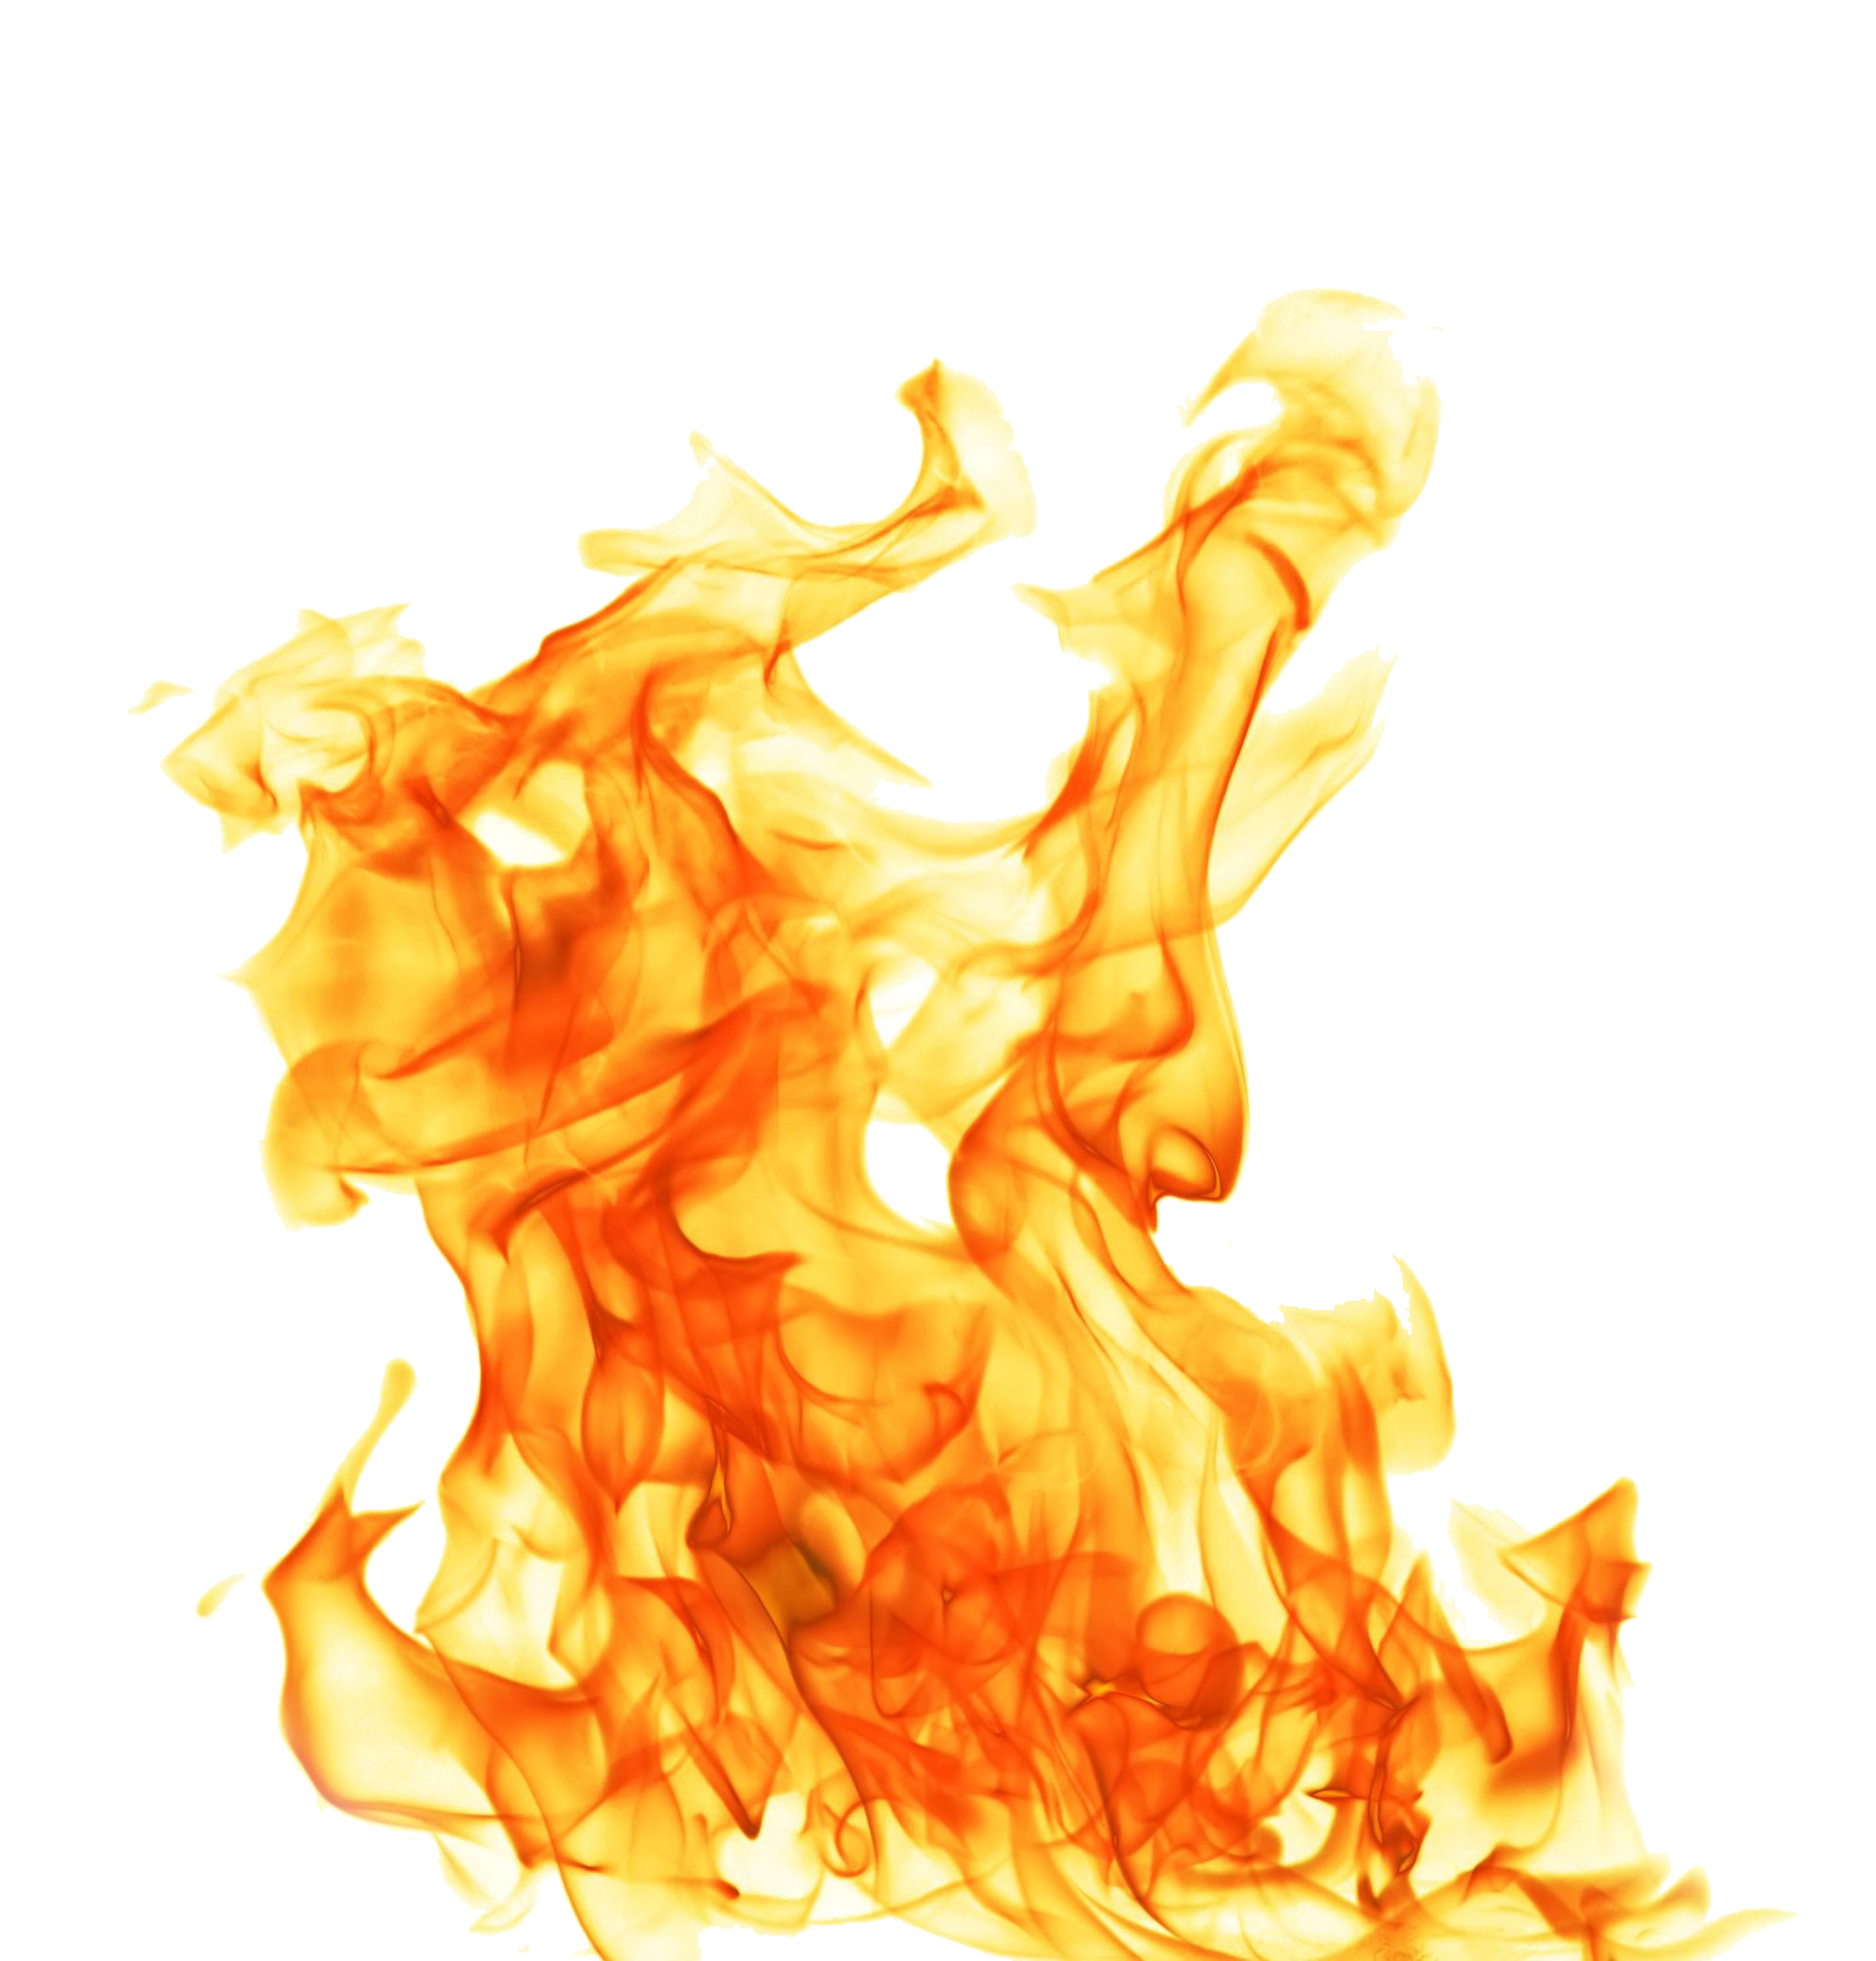 Fire PNG Transparent Images Free Download.